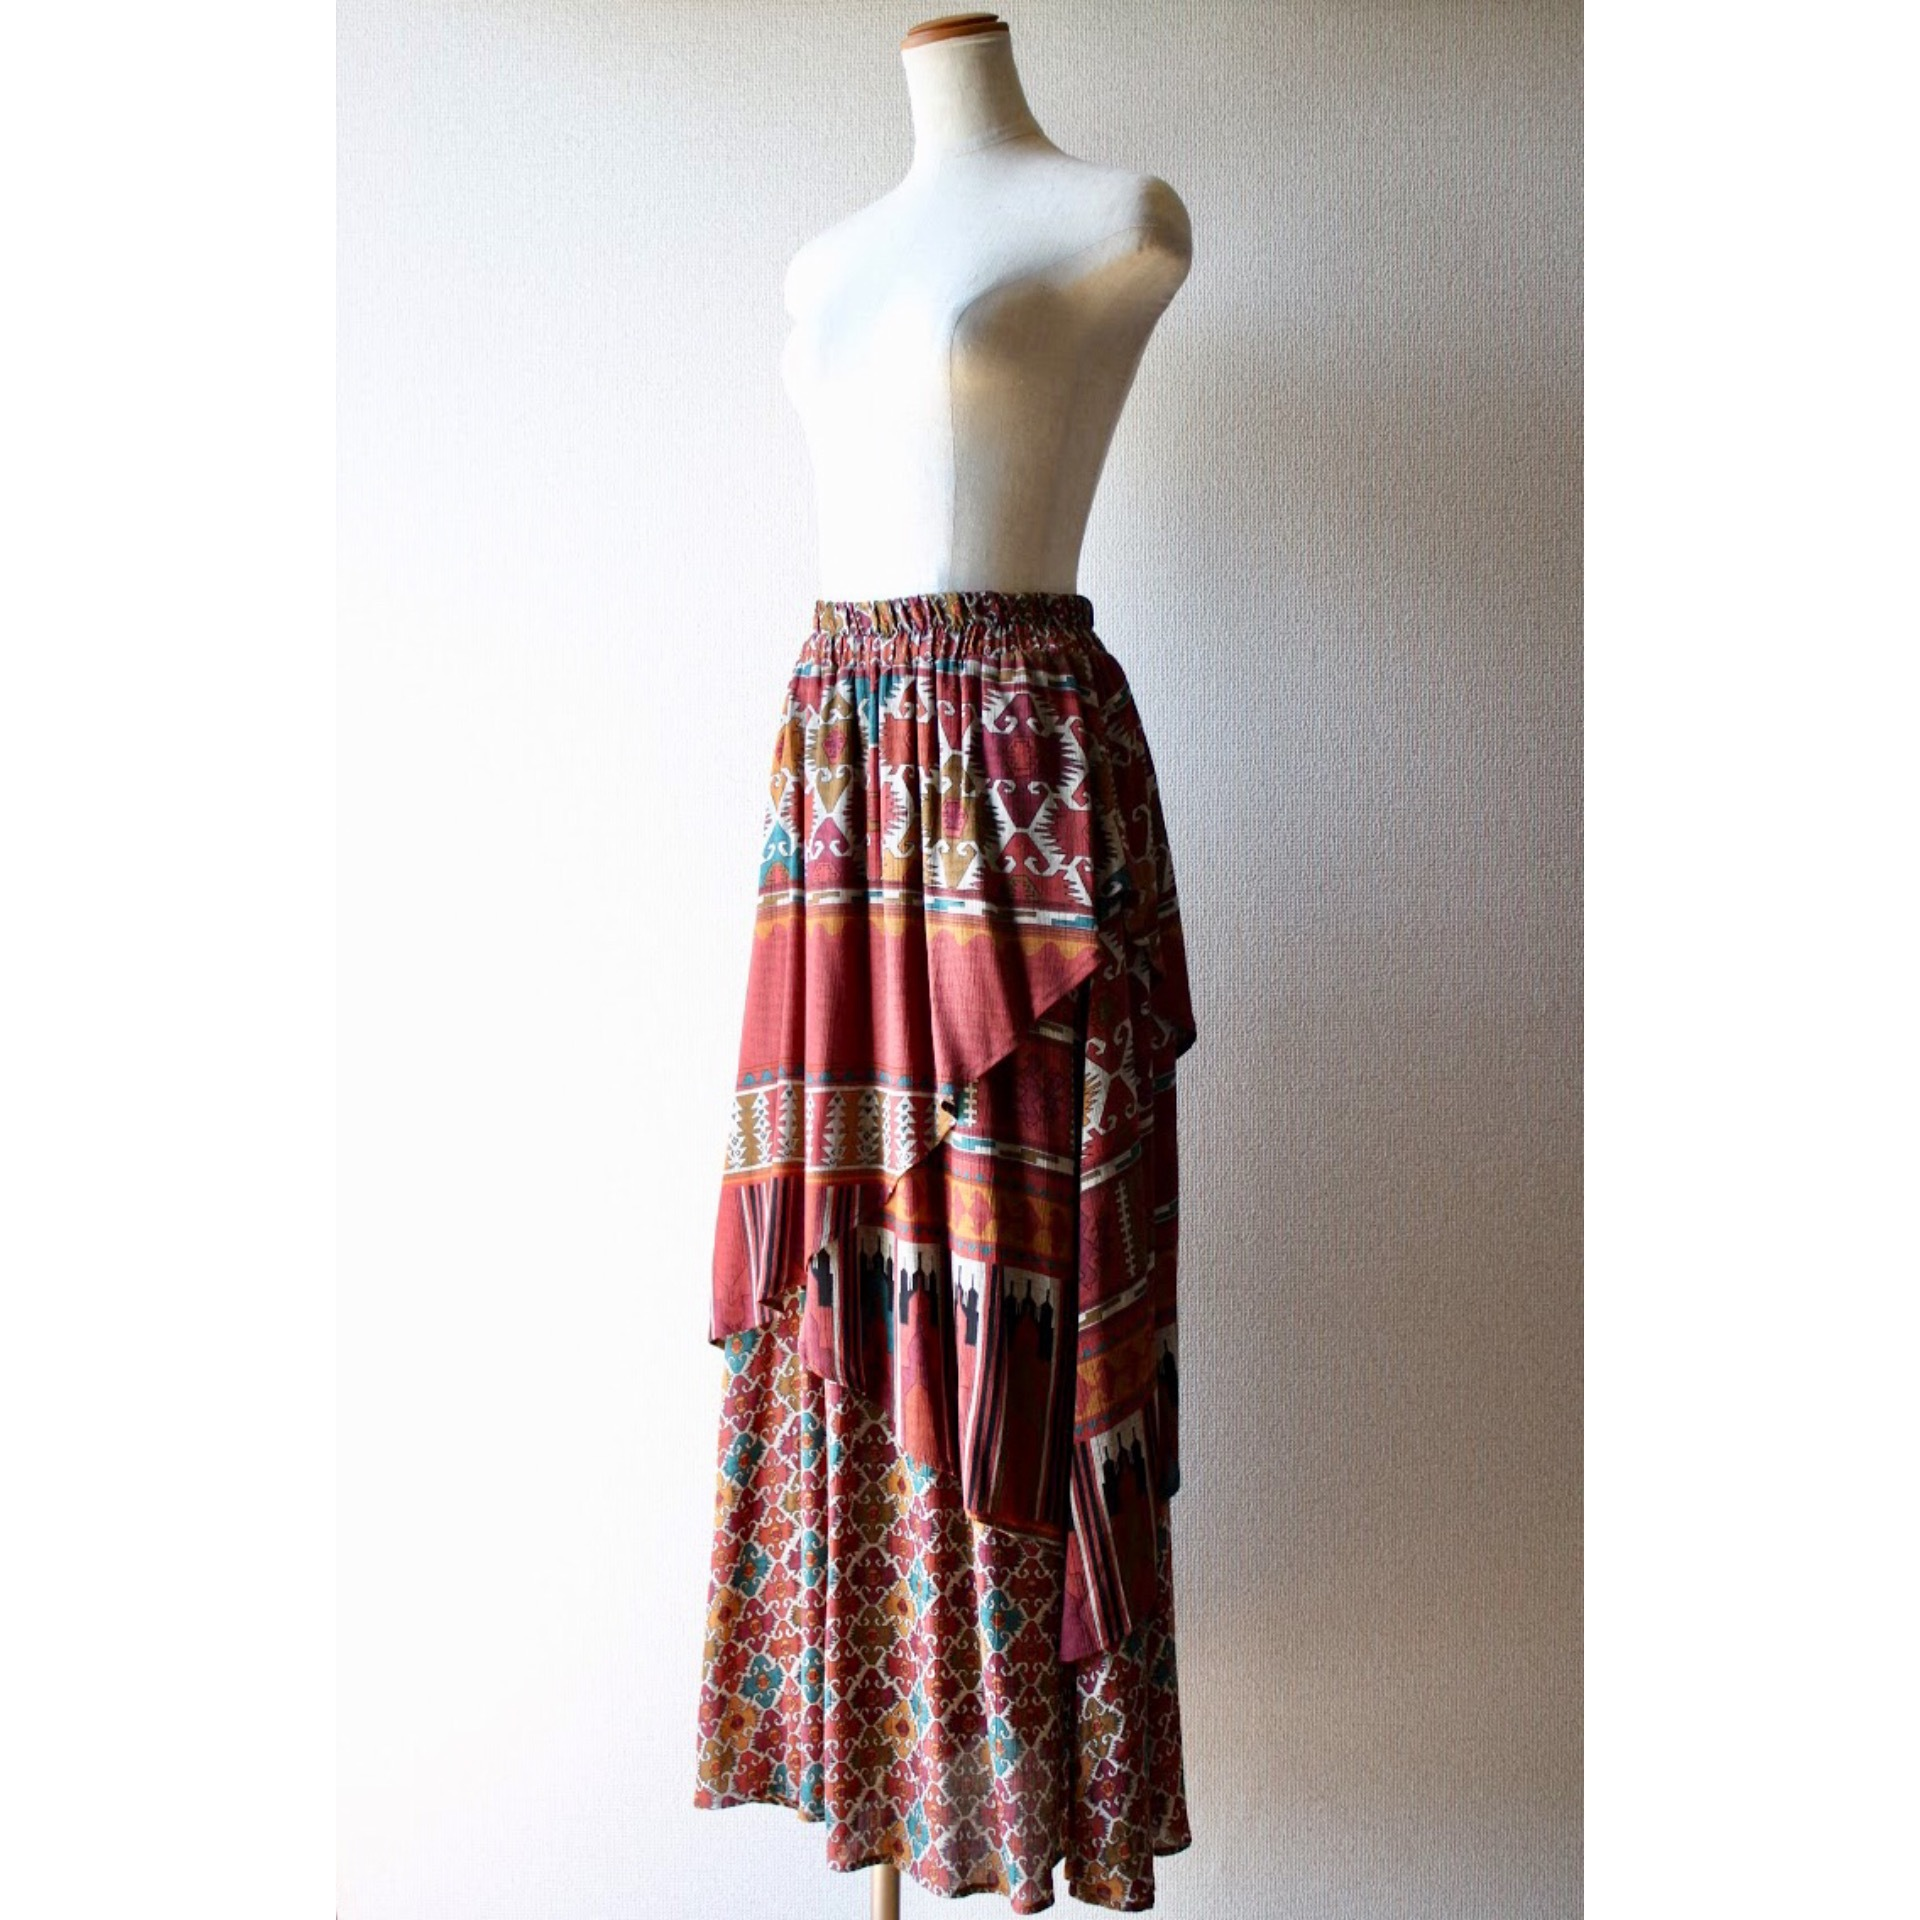 Vintage layered look skirt